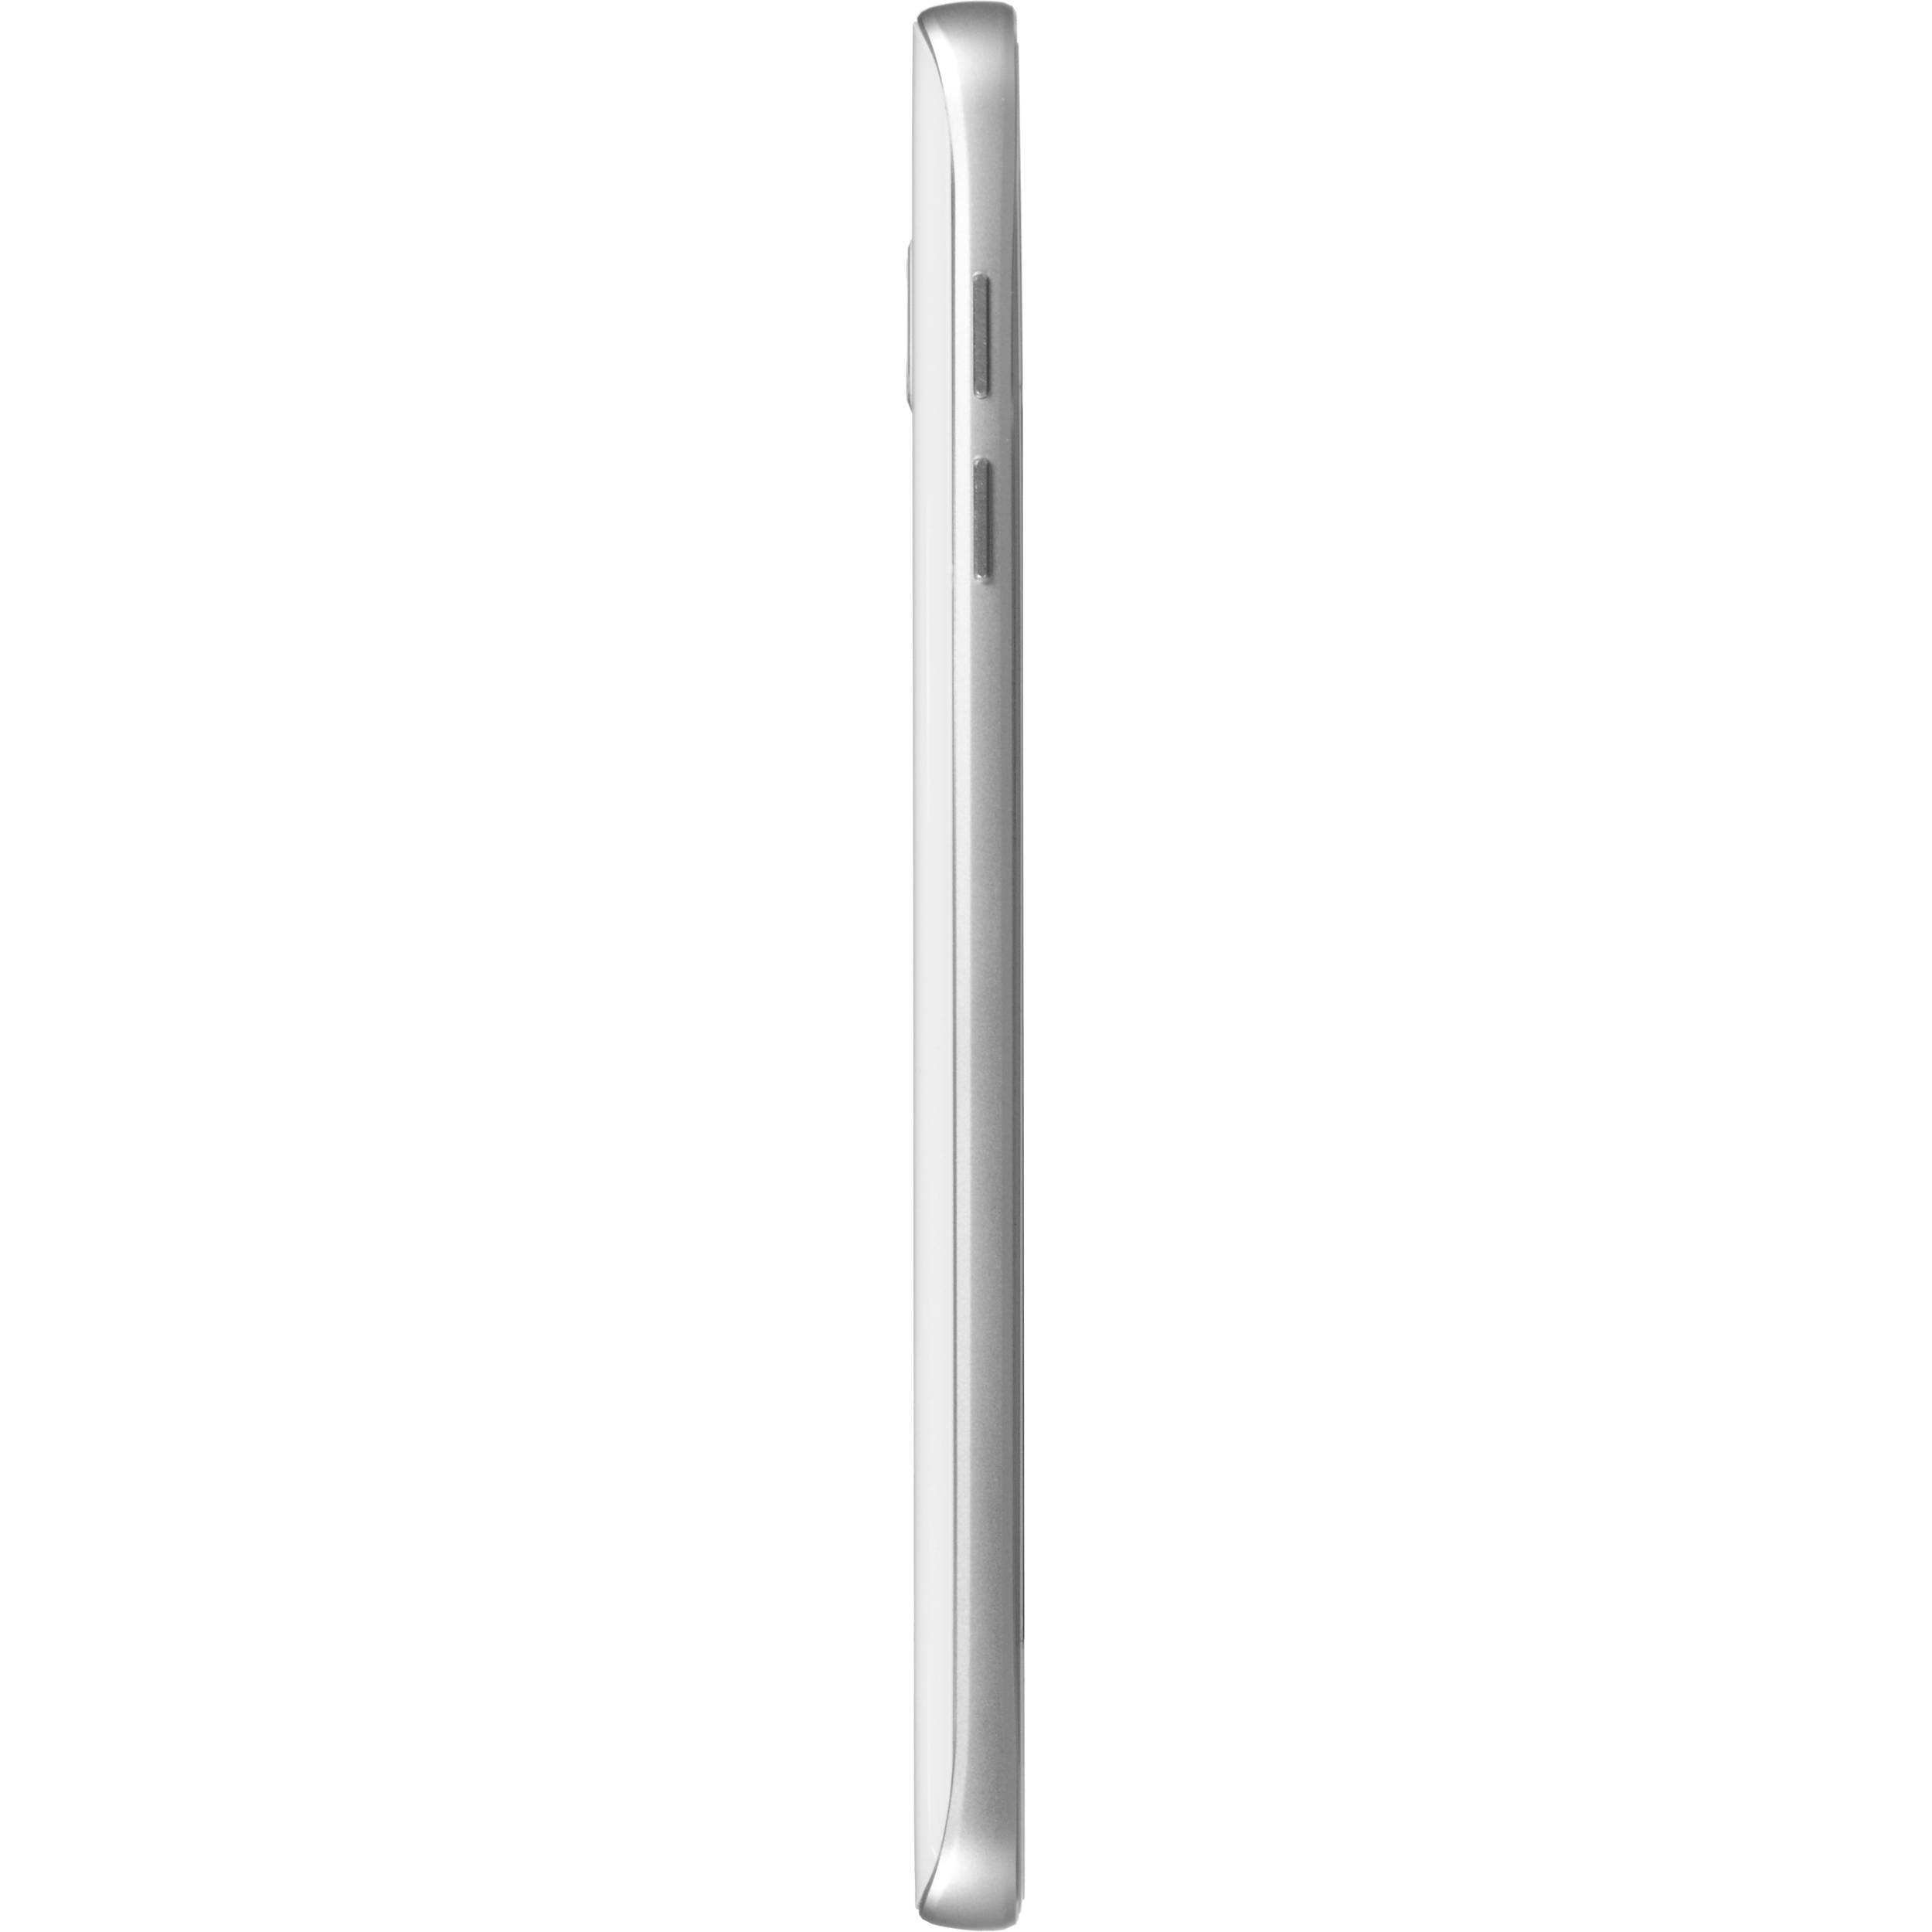 Samsung Galaxy Note 5 SM-N920A 32GB AT&T Branded Smartphone (Unlocked,  White Pearl)